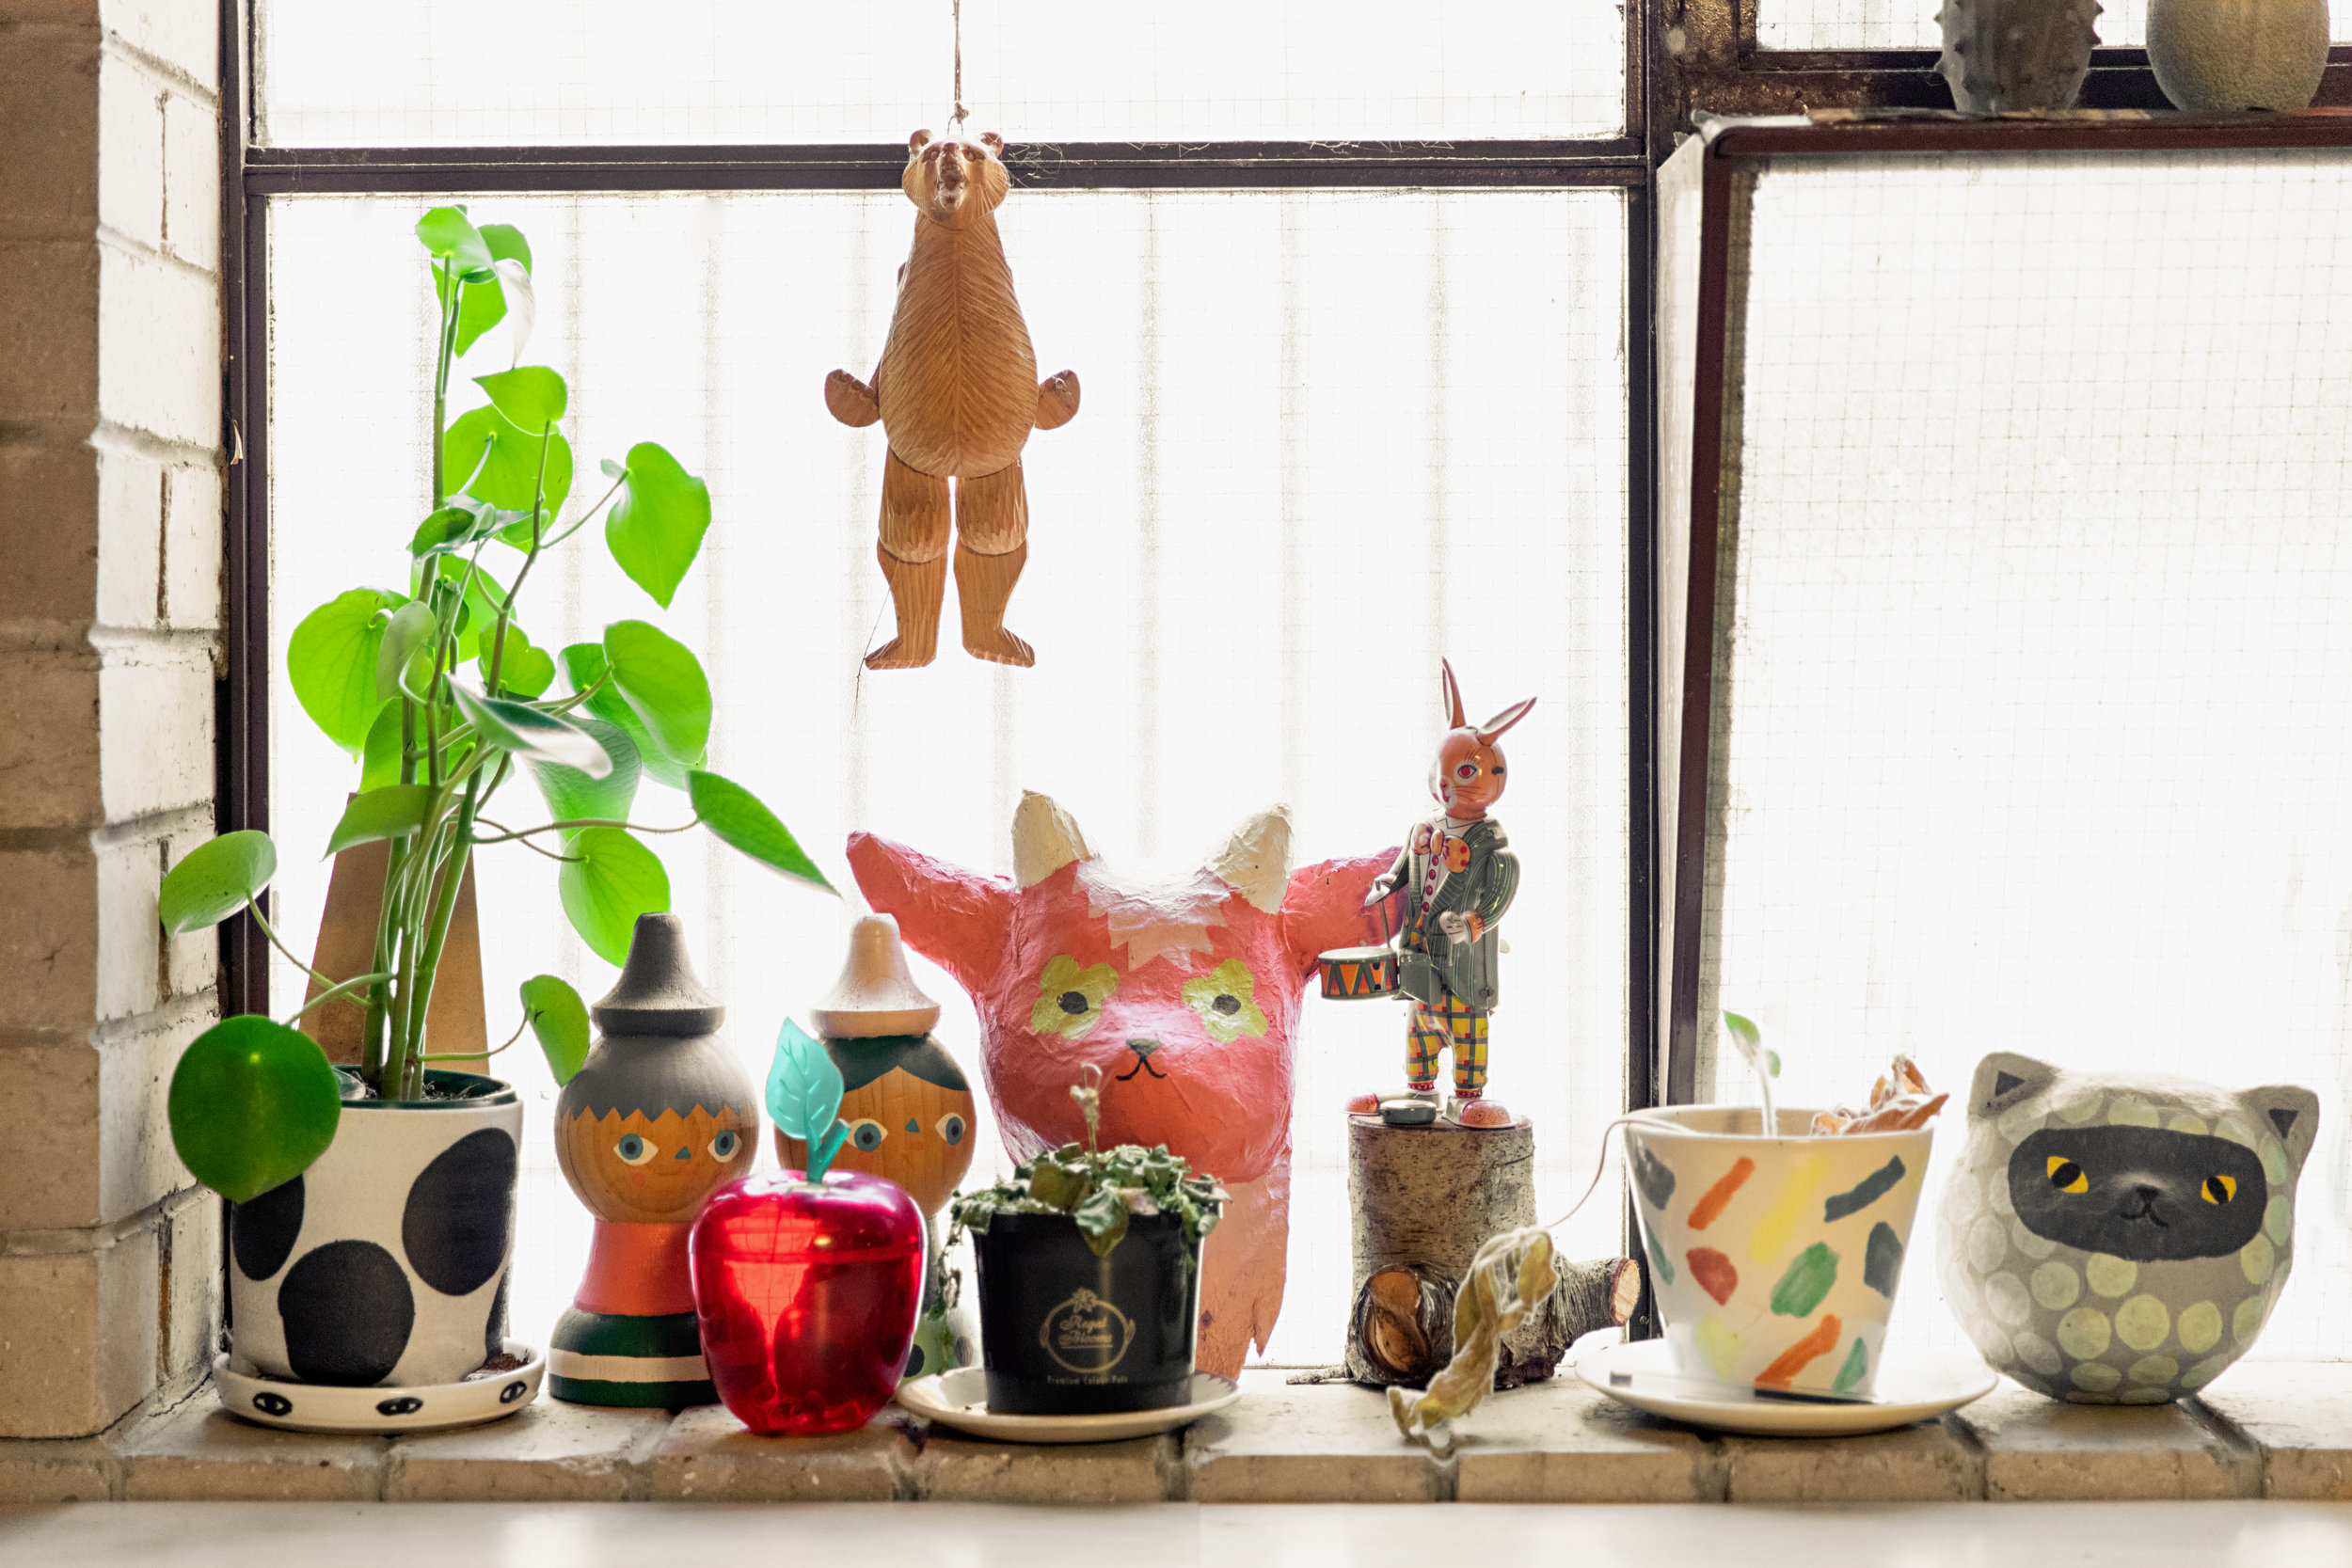 A series of quirky and vibrant objects sitting in Beci Orpin's Brunswick studio.